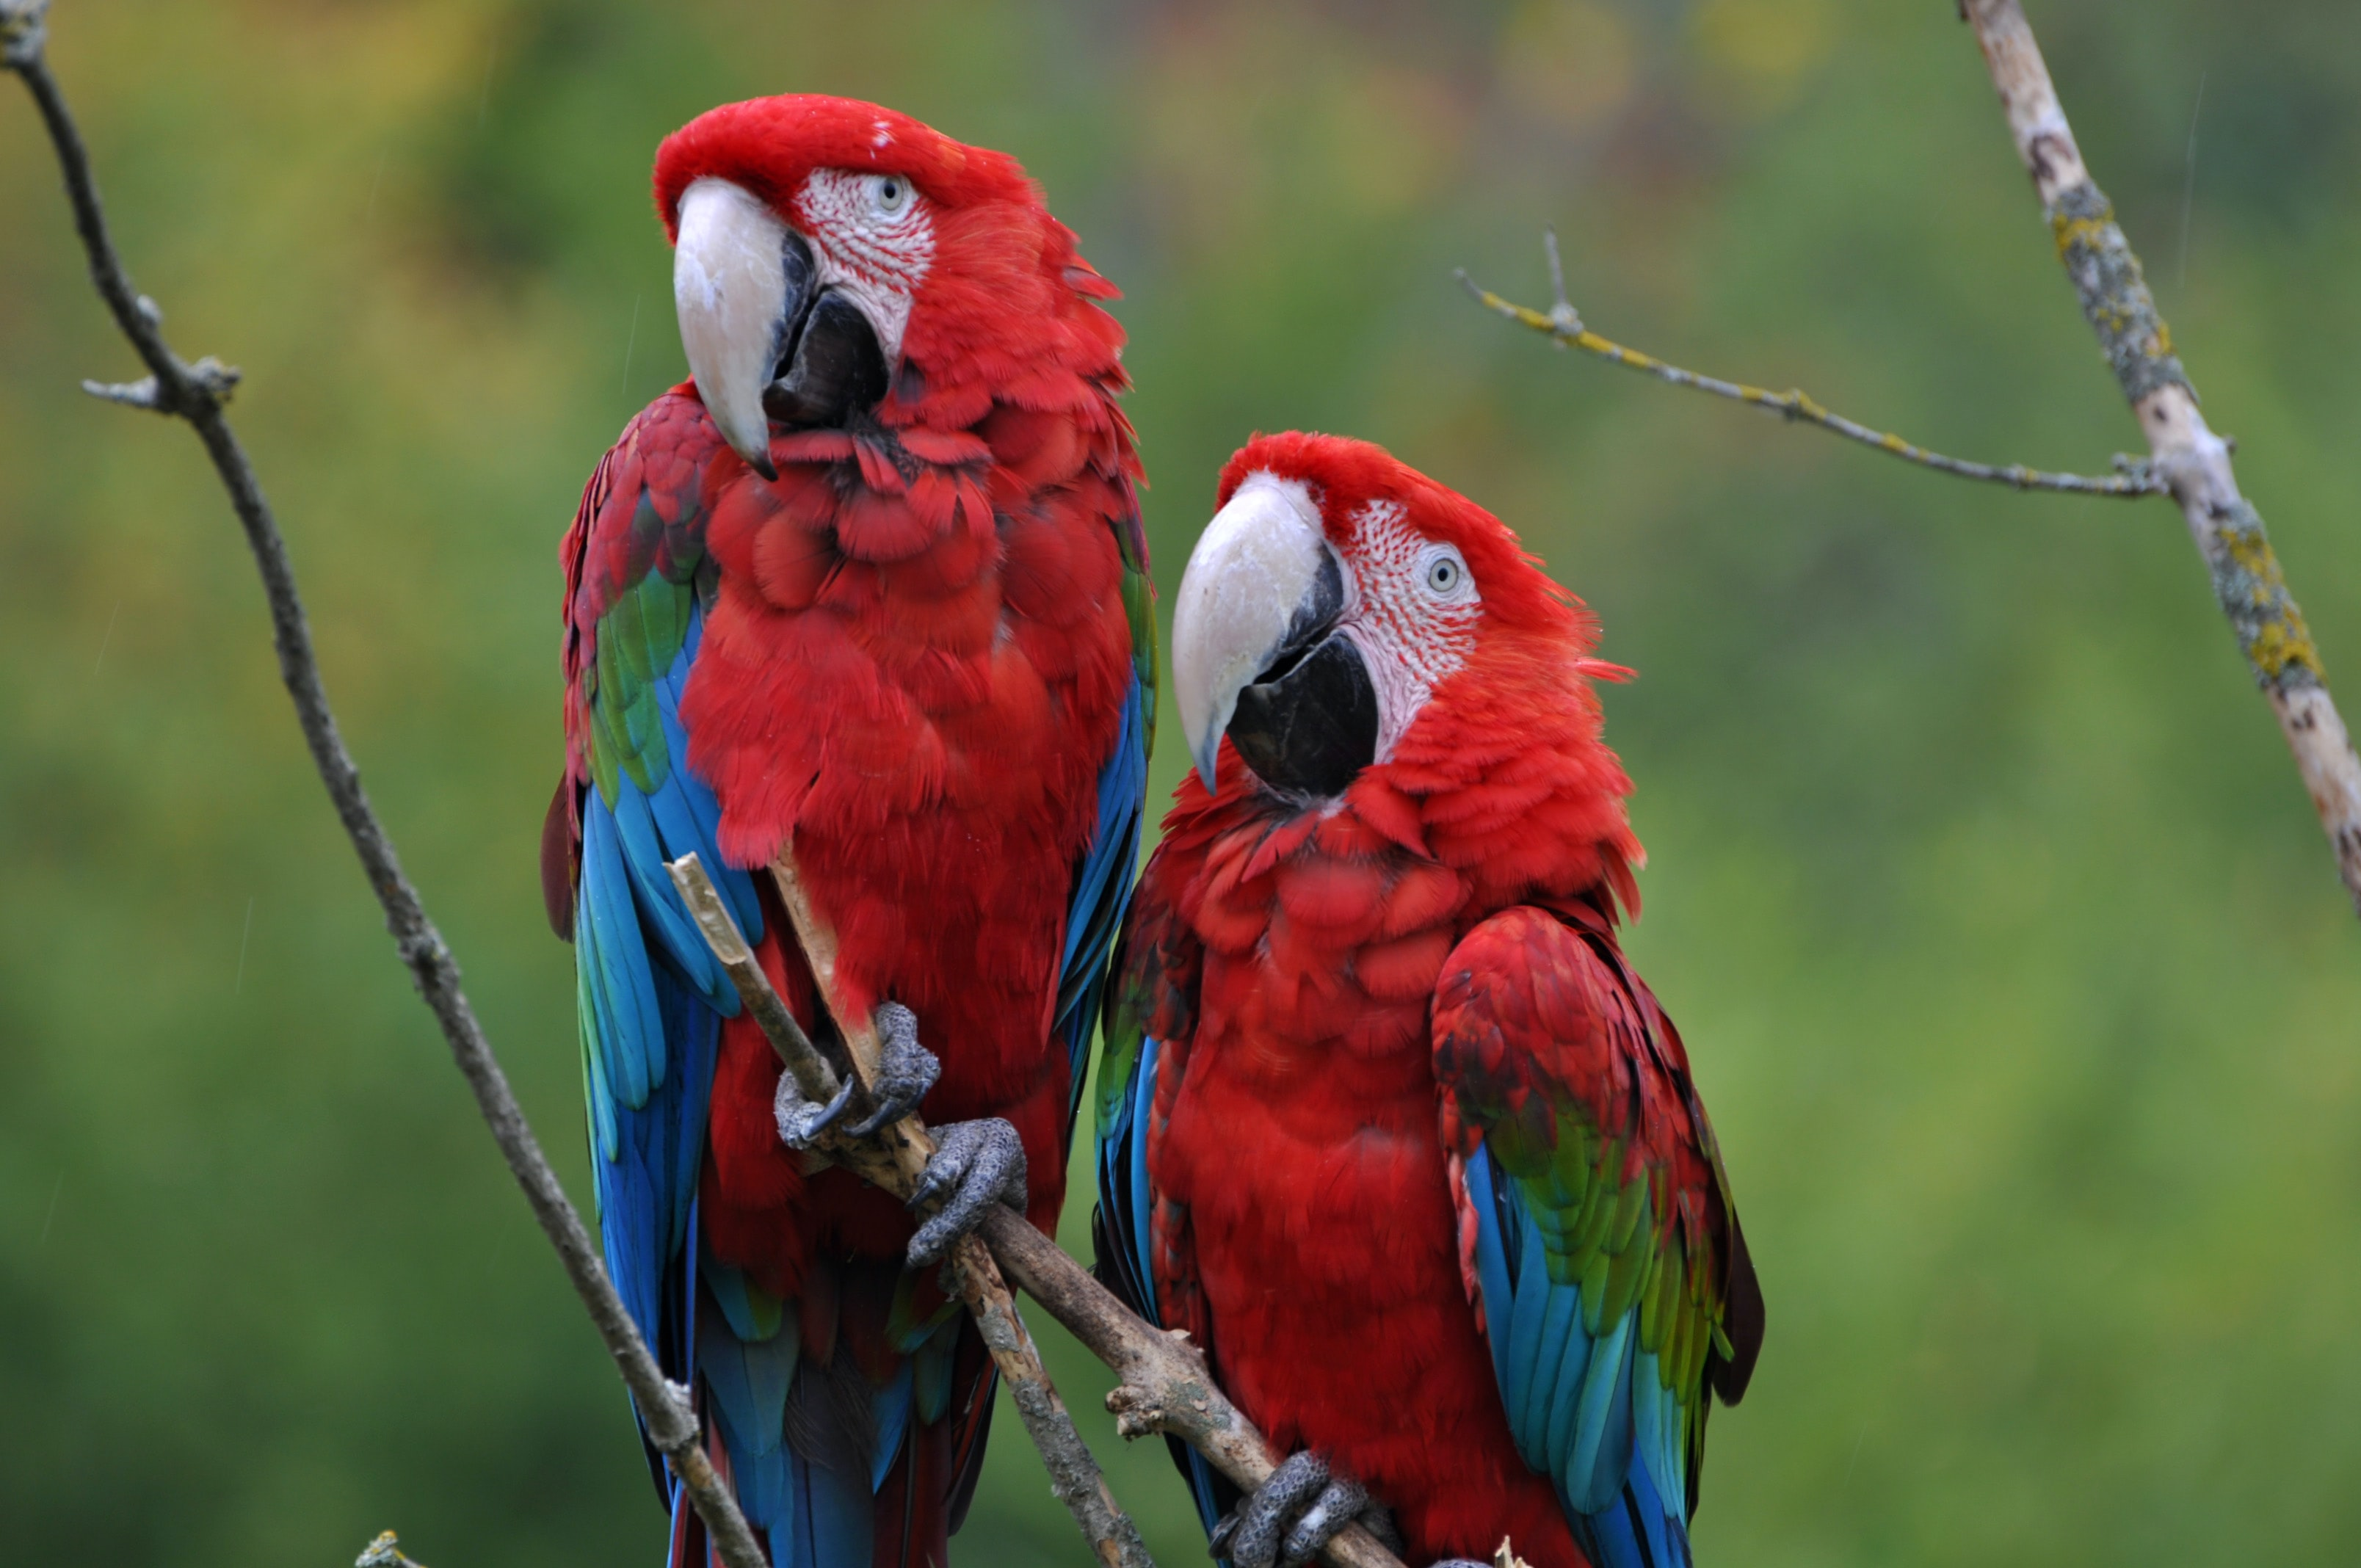 selective focus photography of two red-blue-and-green macaws standing on tree branch during daytime